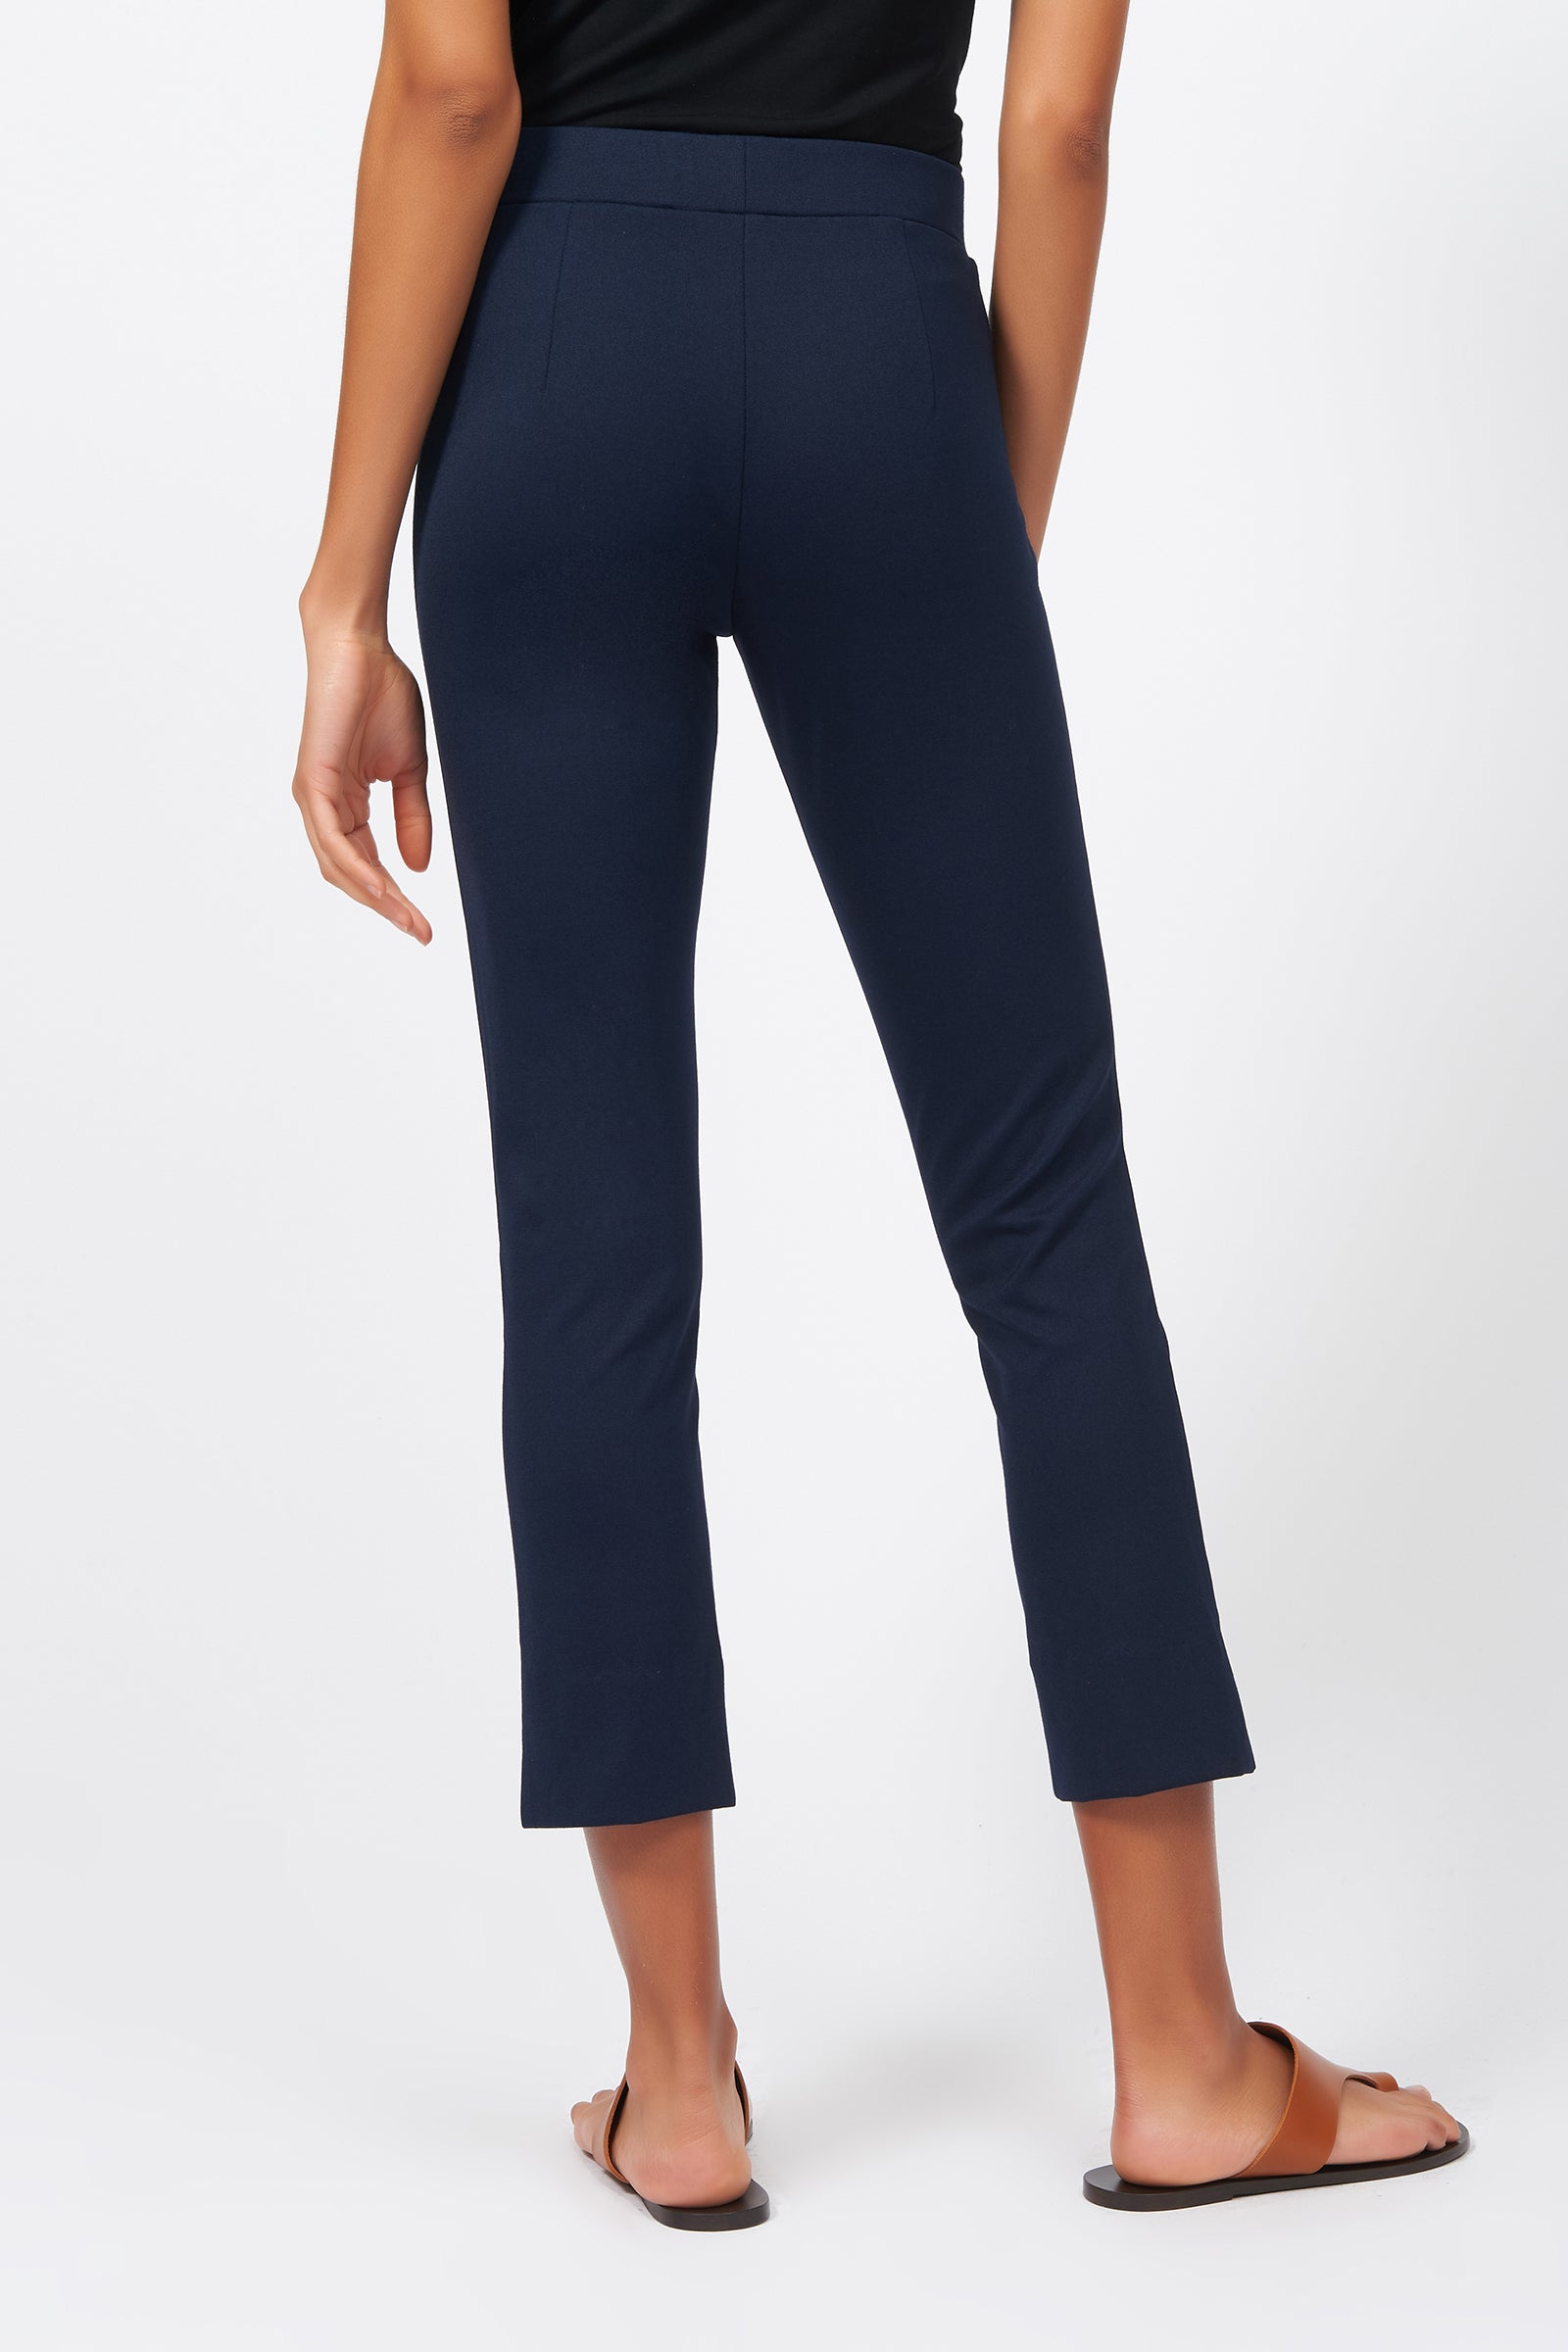 Kal Rieman Pintuck Slit Capri in Navy on Model Full Front View